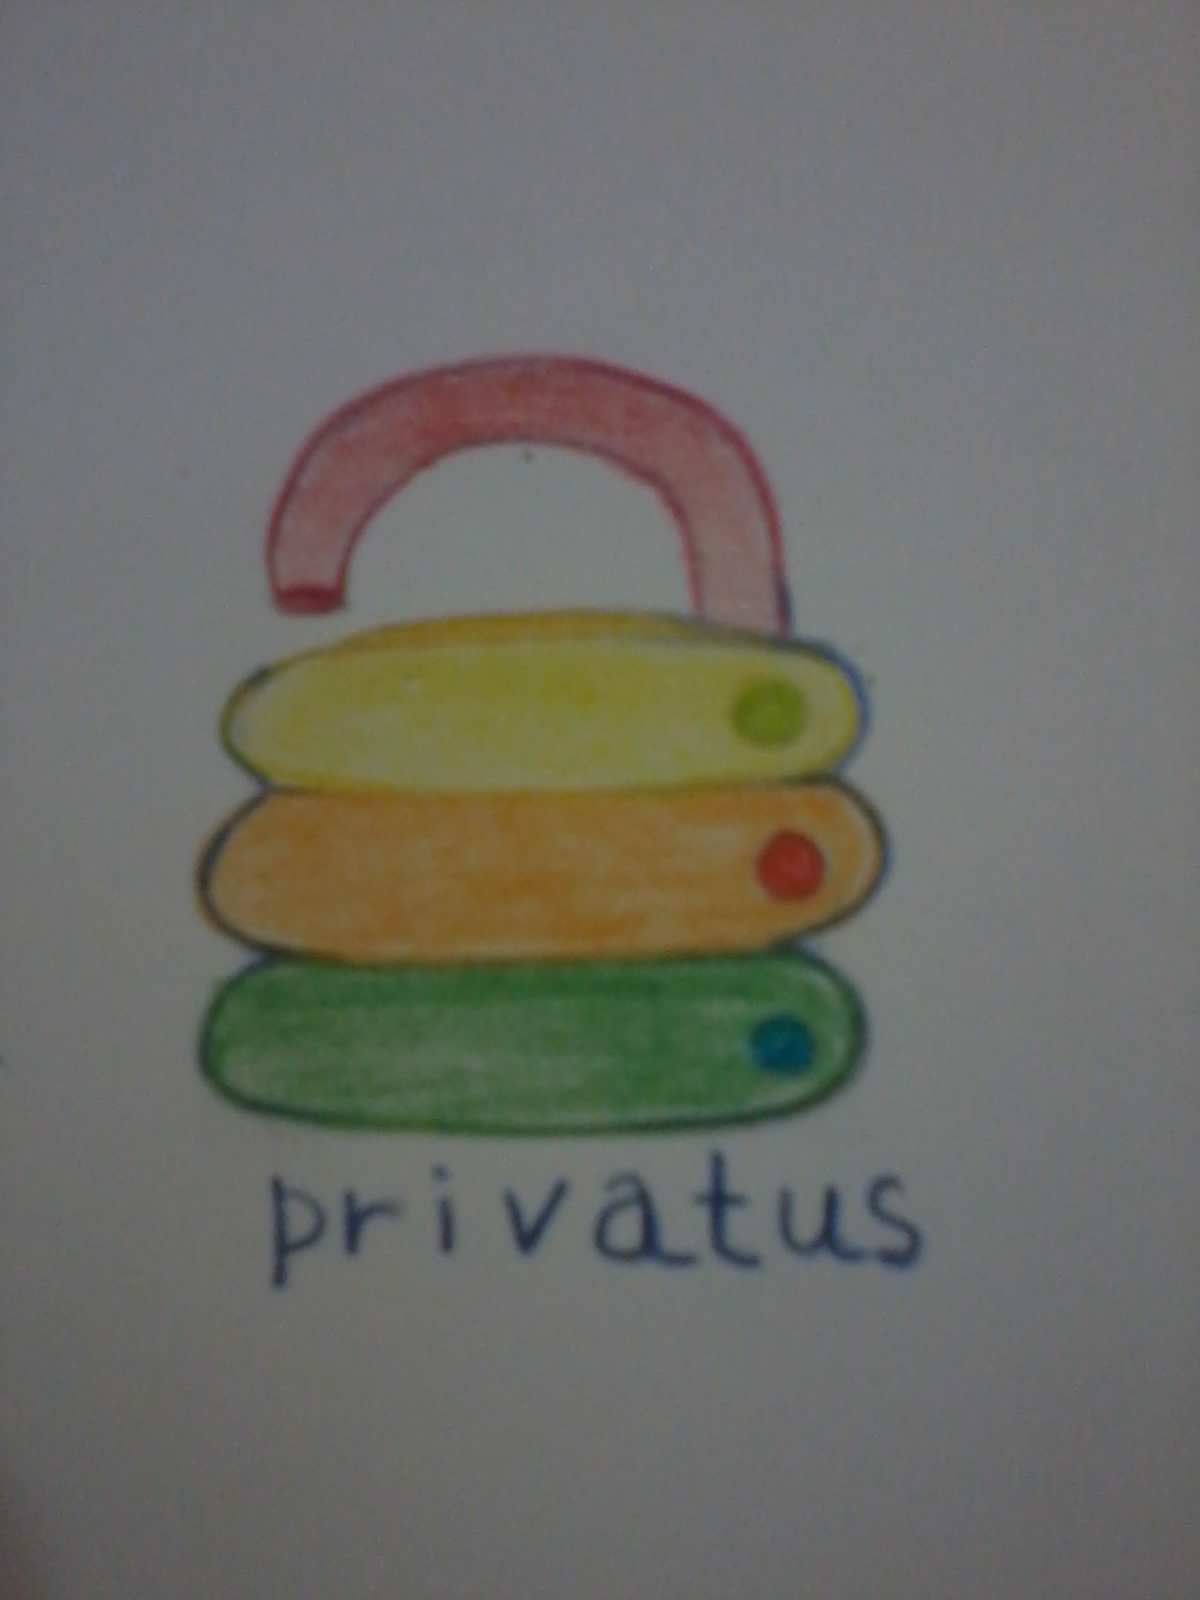 Logo Design by mediaproductionart - Entry No. 38 in the Logo Design Contest New Logo Design for privatus.